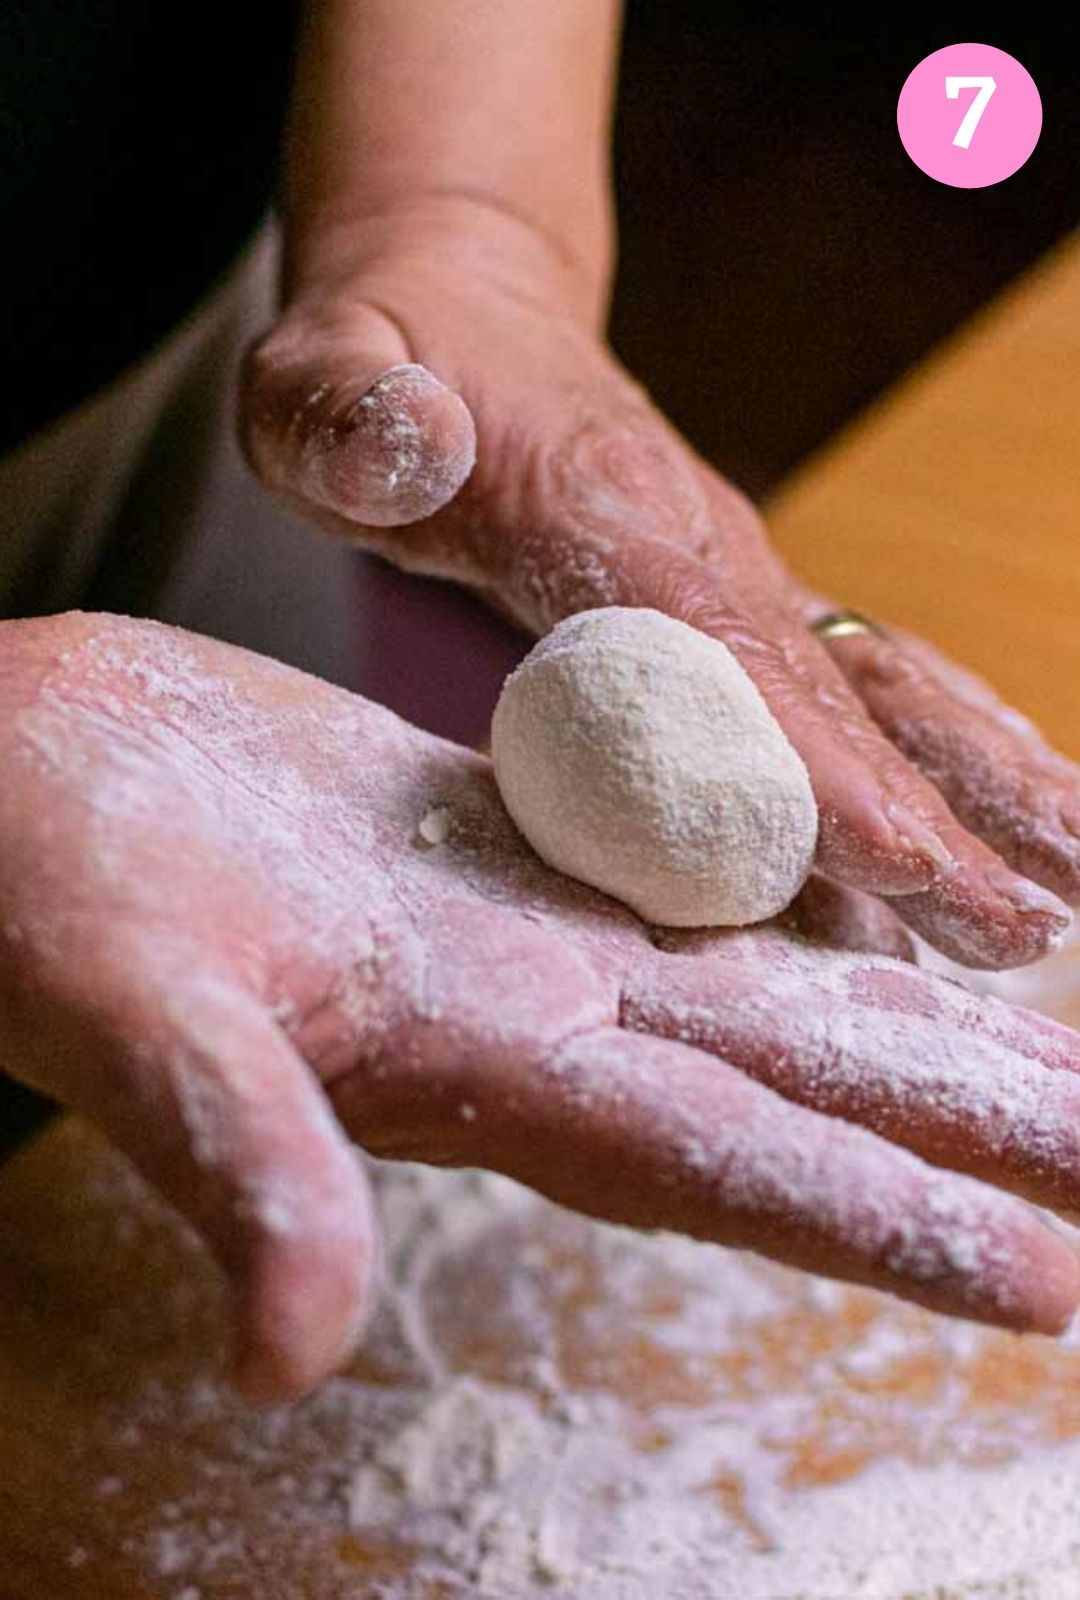 Rolling ball of dough in hand